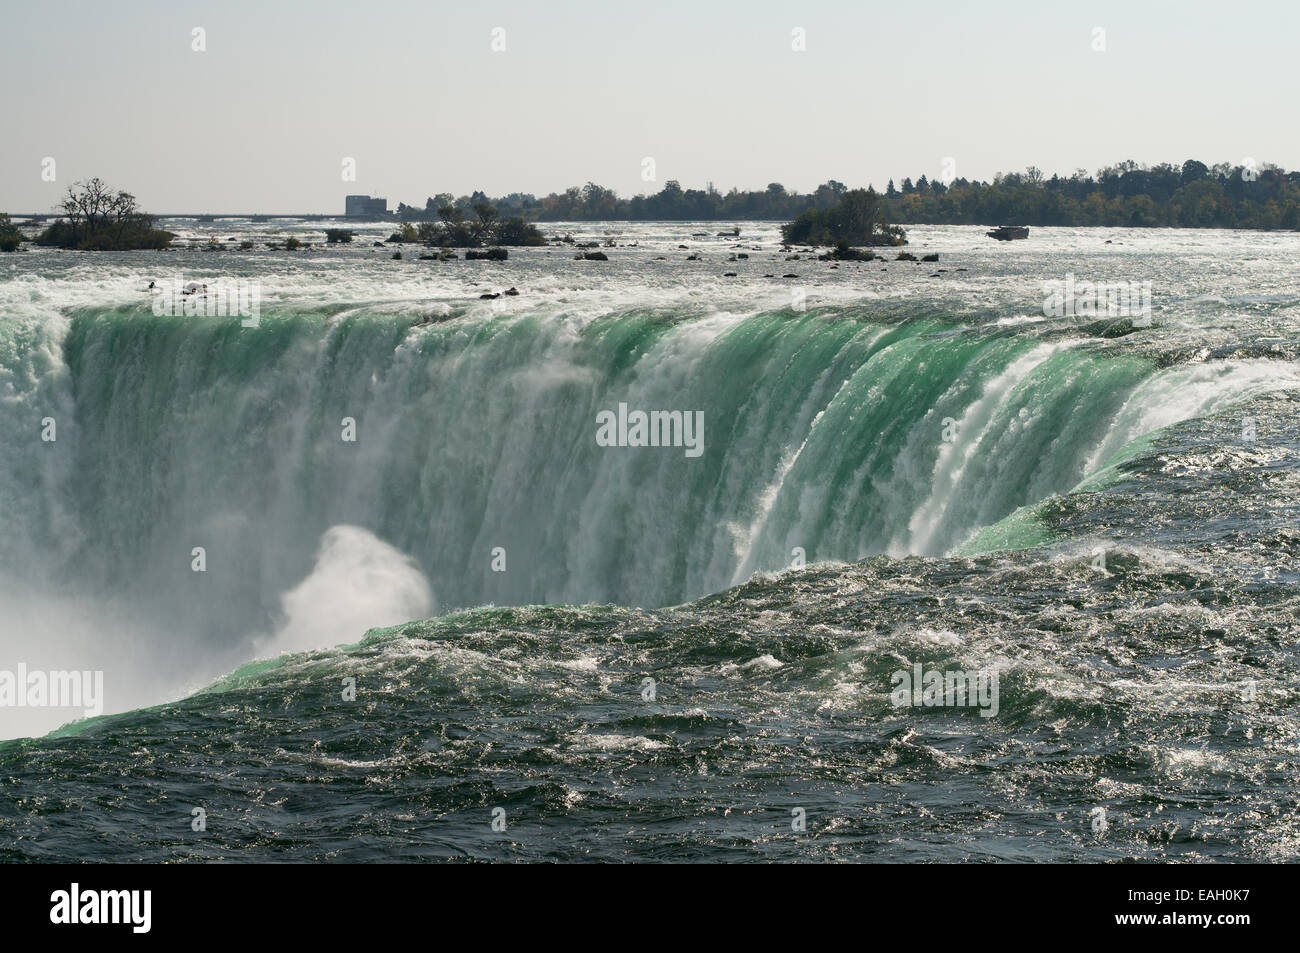 Horseshoe falls, Niagara Falls seen from the top Ontario, Canada - Stock Image